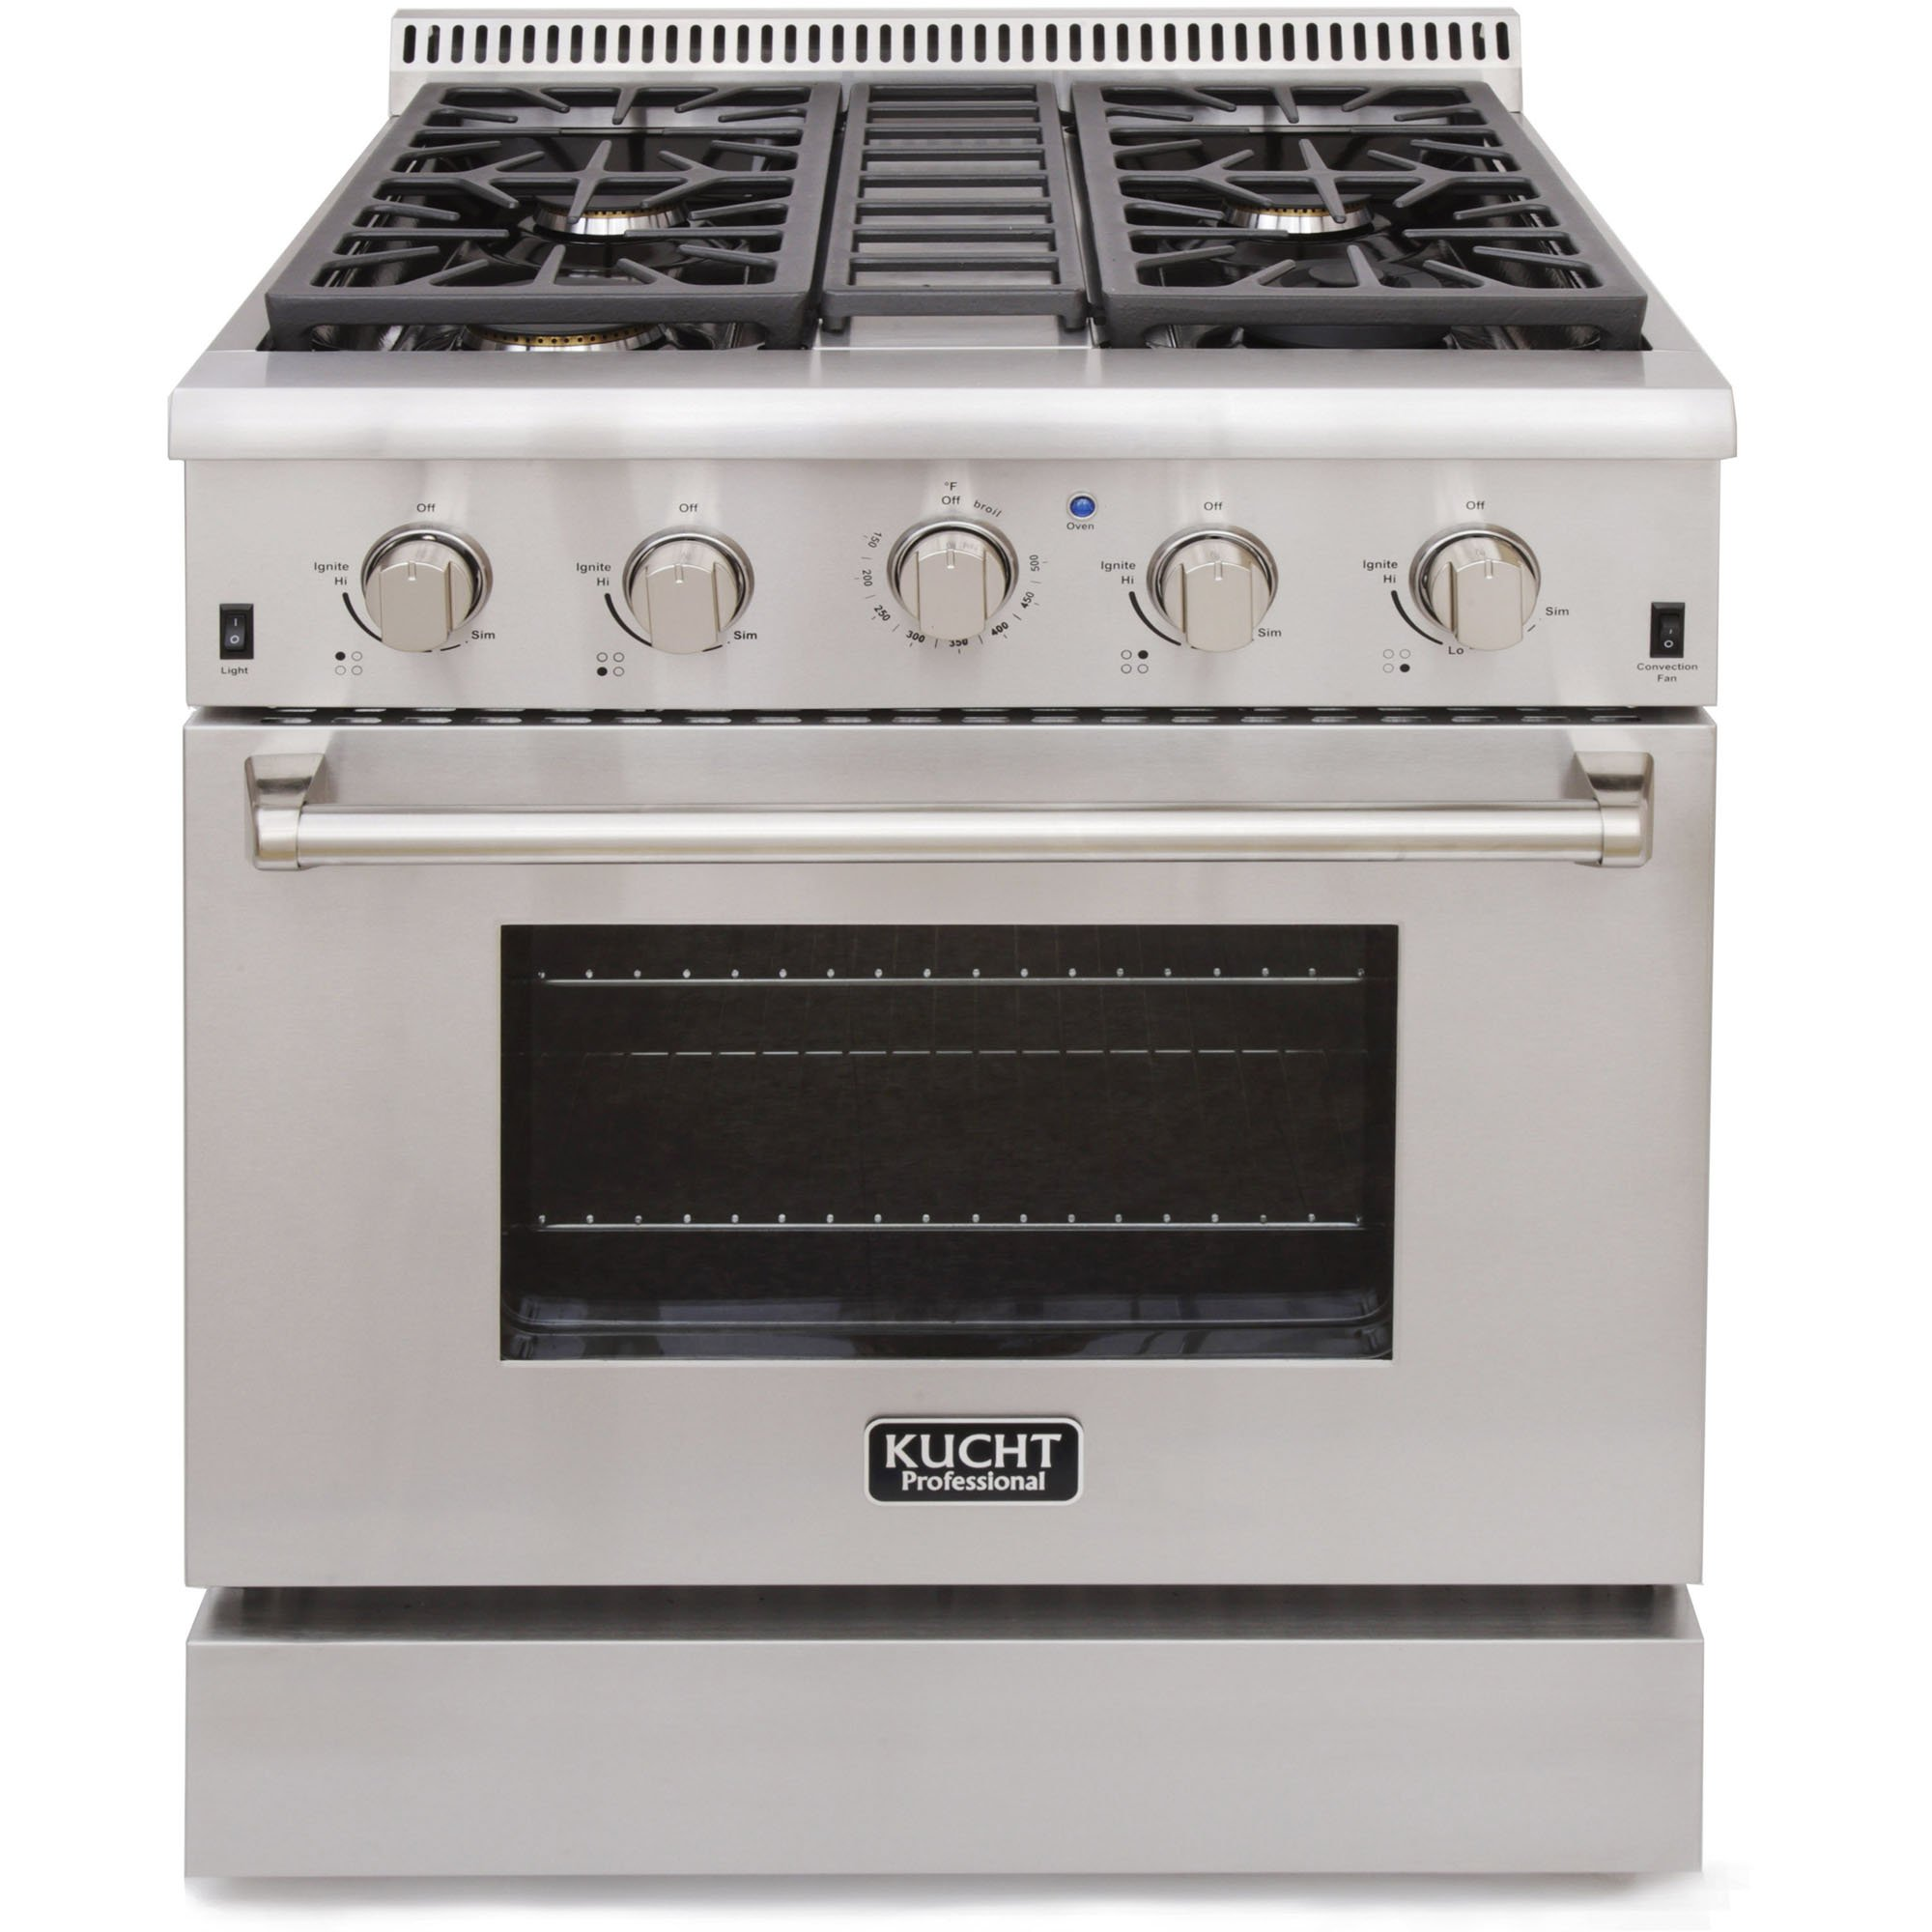 Kucht KRG3080U Professional 4.2 cu. ft. Natural Gas Range with Sealed Burners and Convection Oven, Stainless Steel